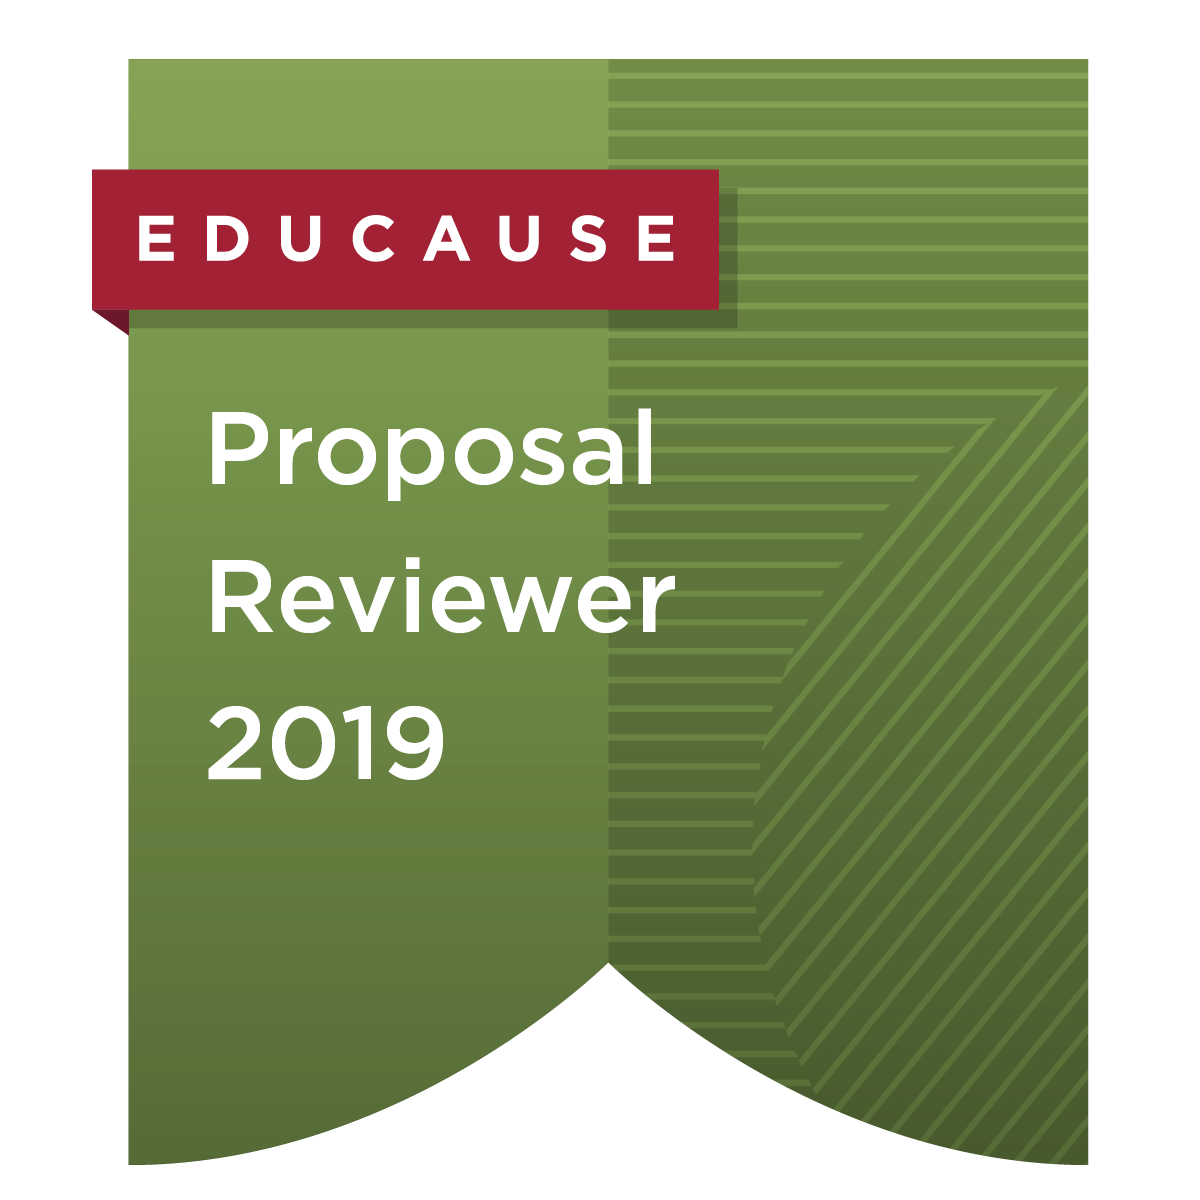 Proposal Reviewer 2019